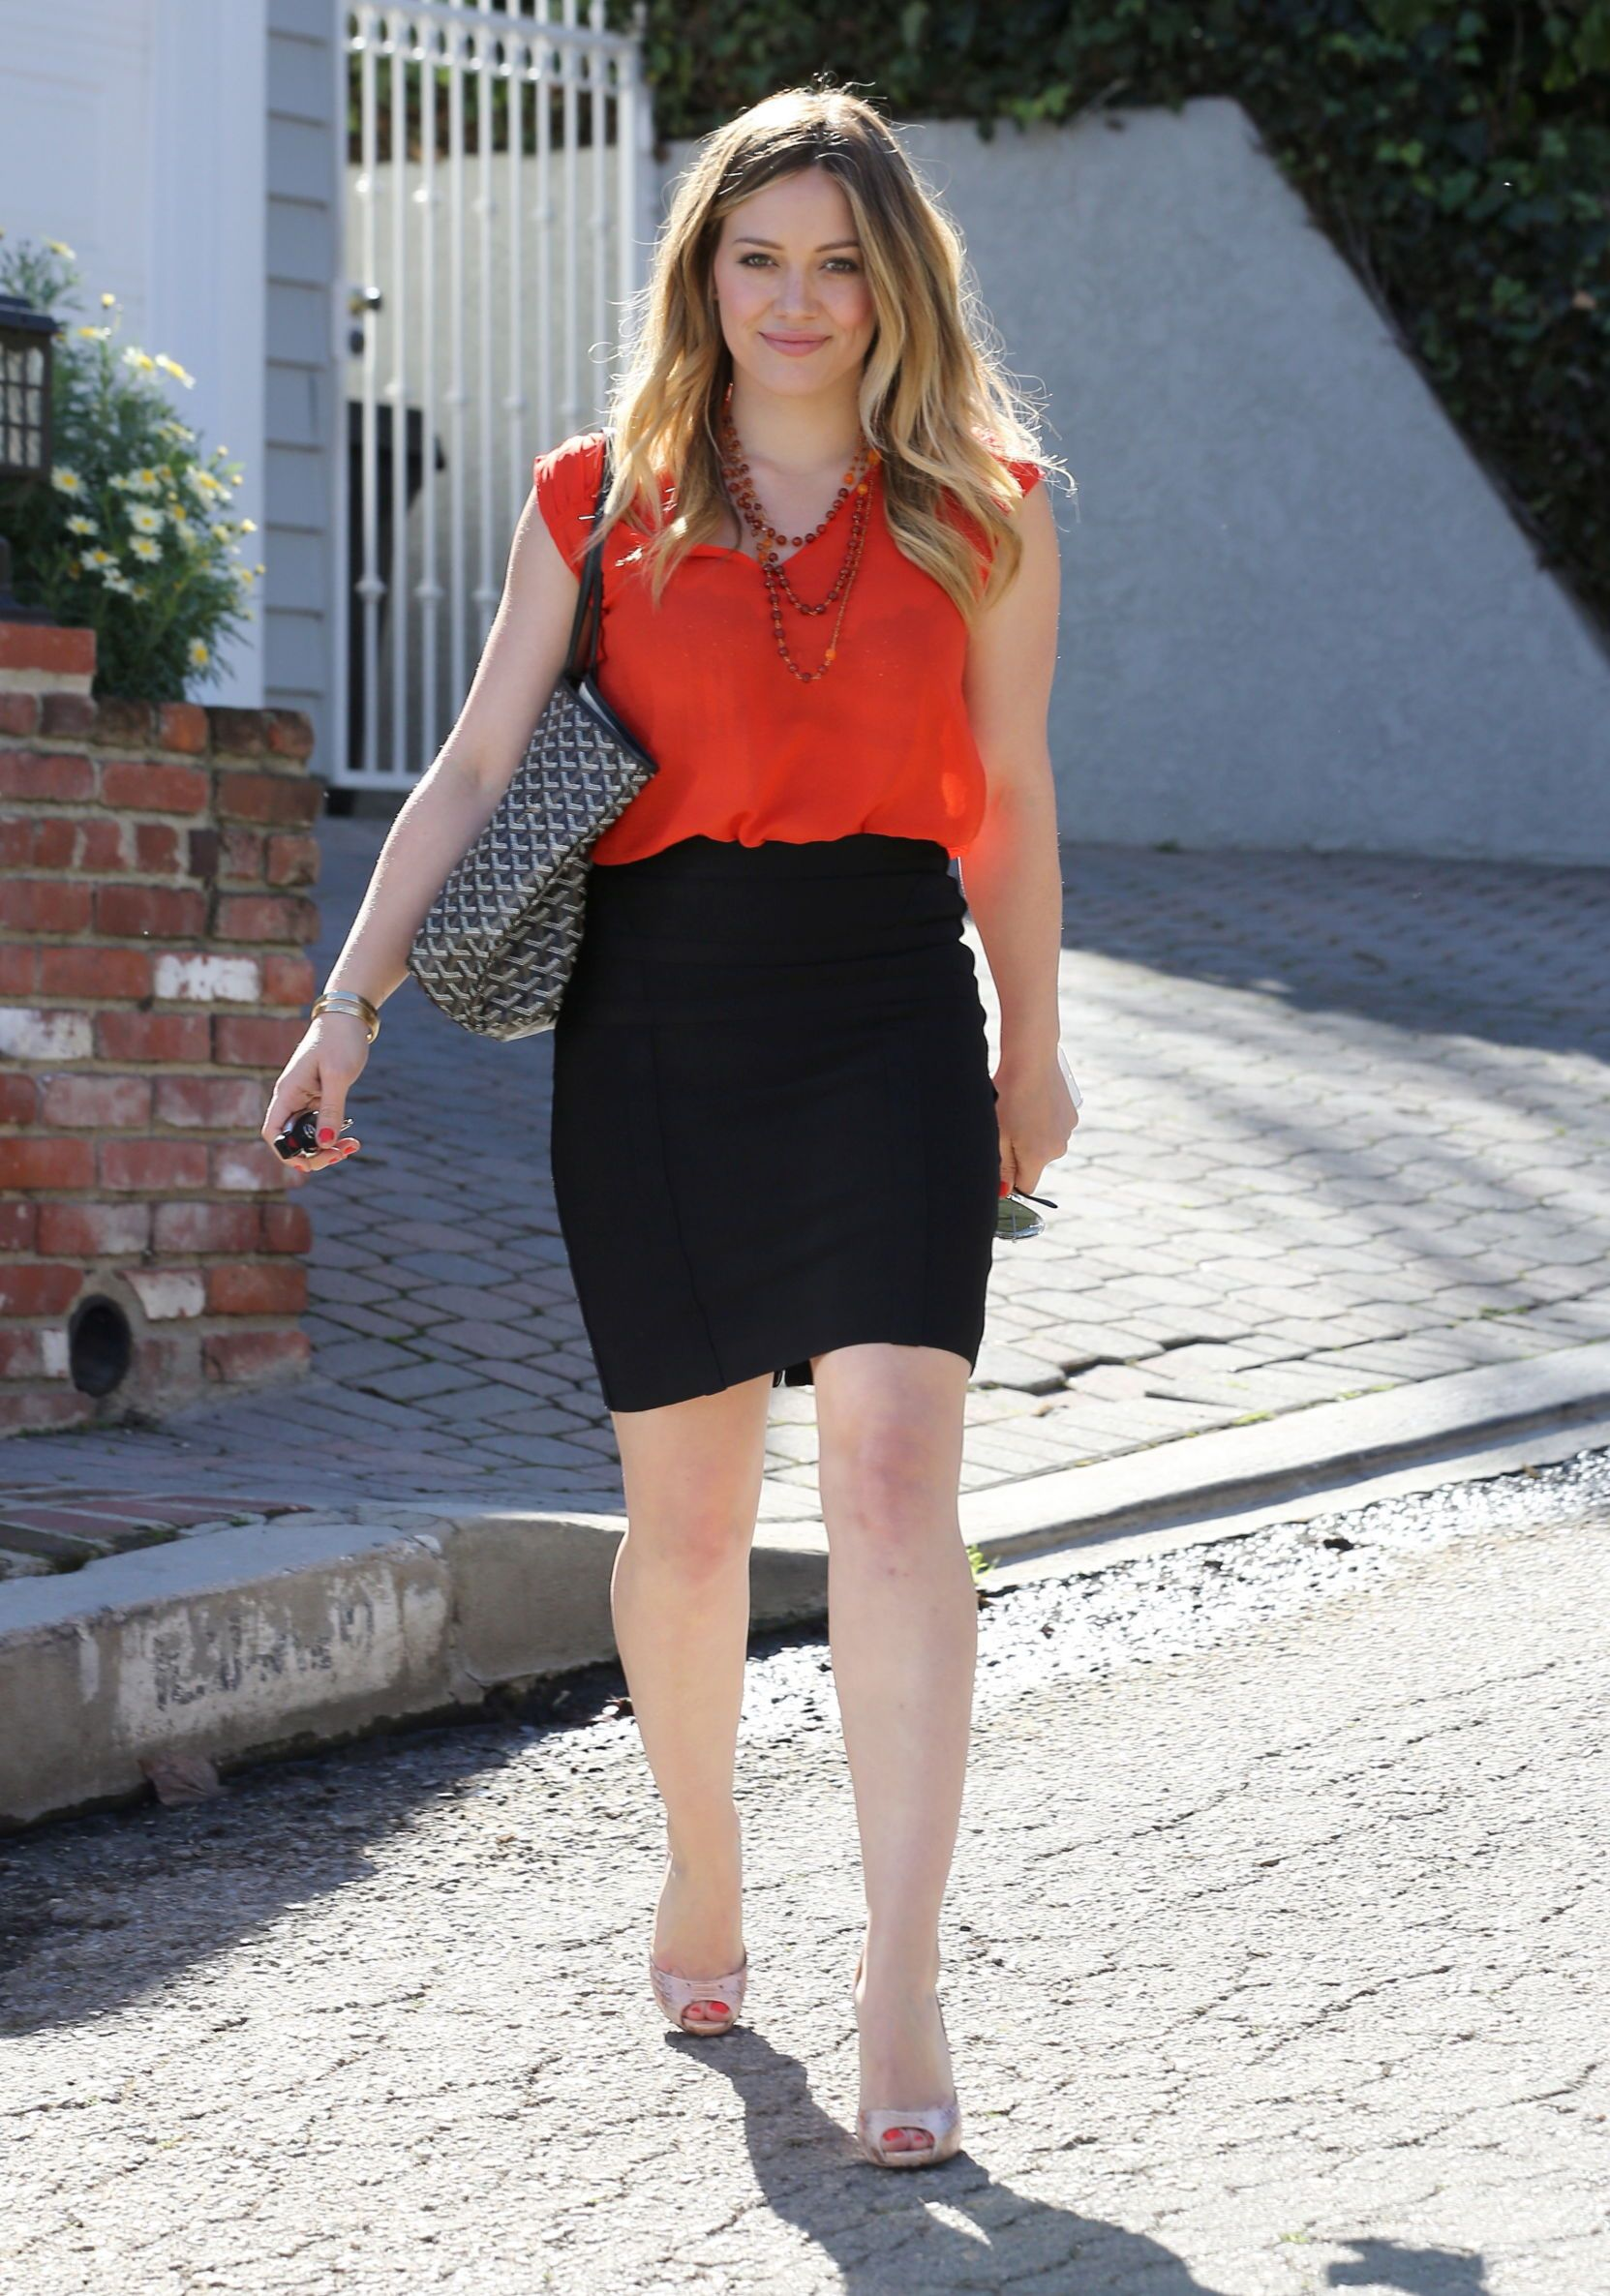 Hilary Duff Strappy Sandals Shoes Lookbook StyleBistro